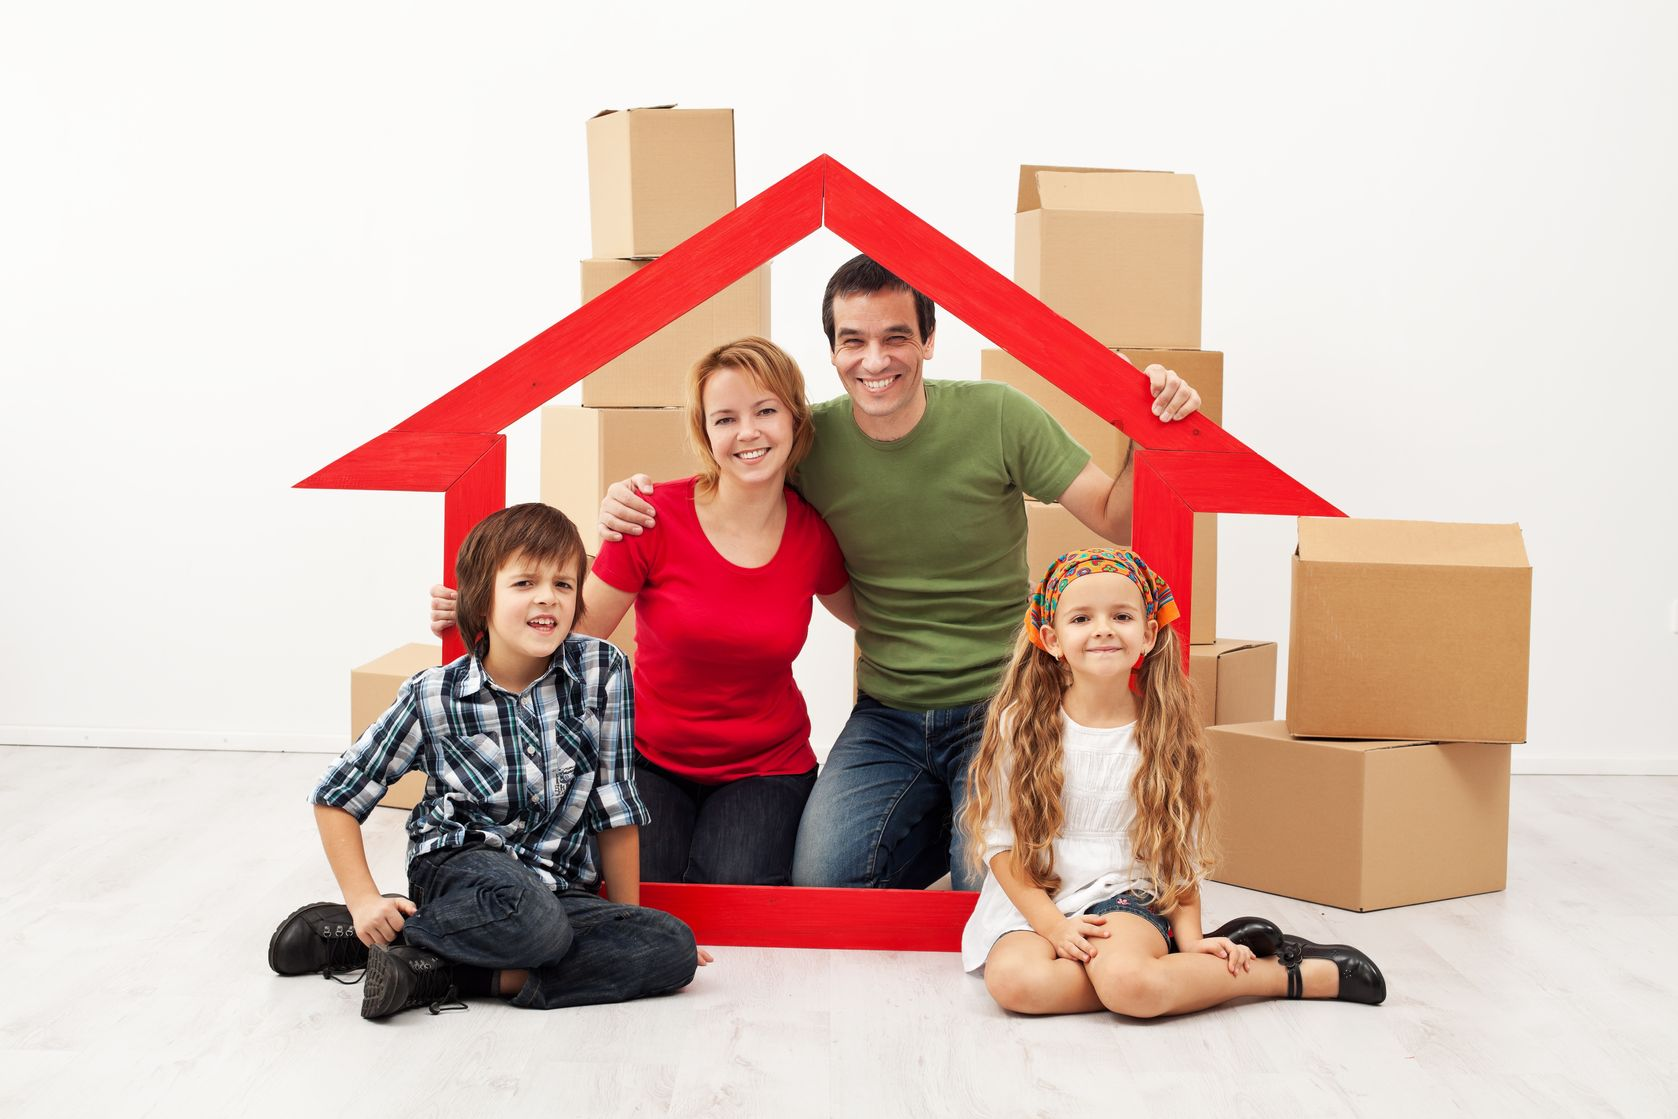 Colorado & New Mexico Homeowners Insurance